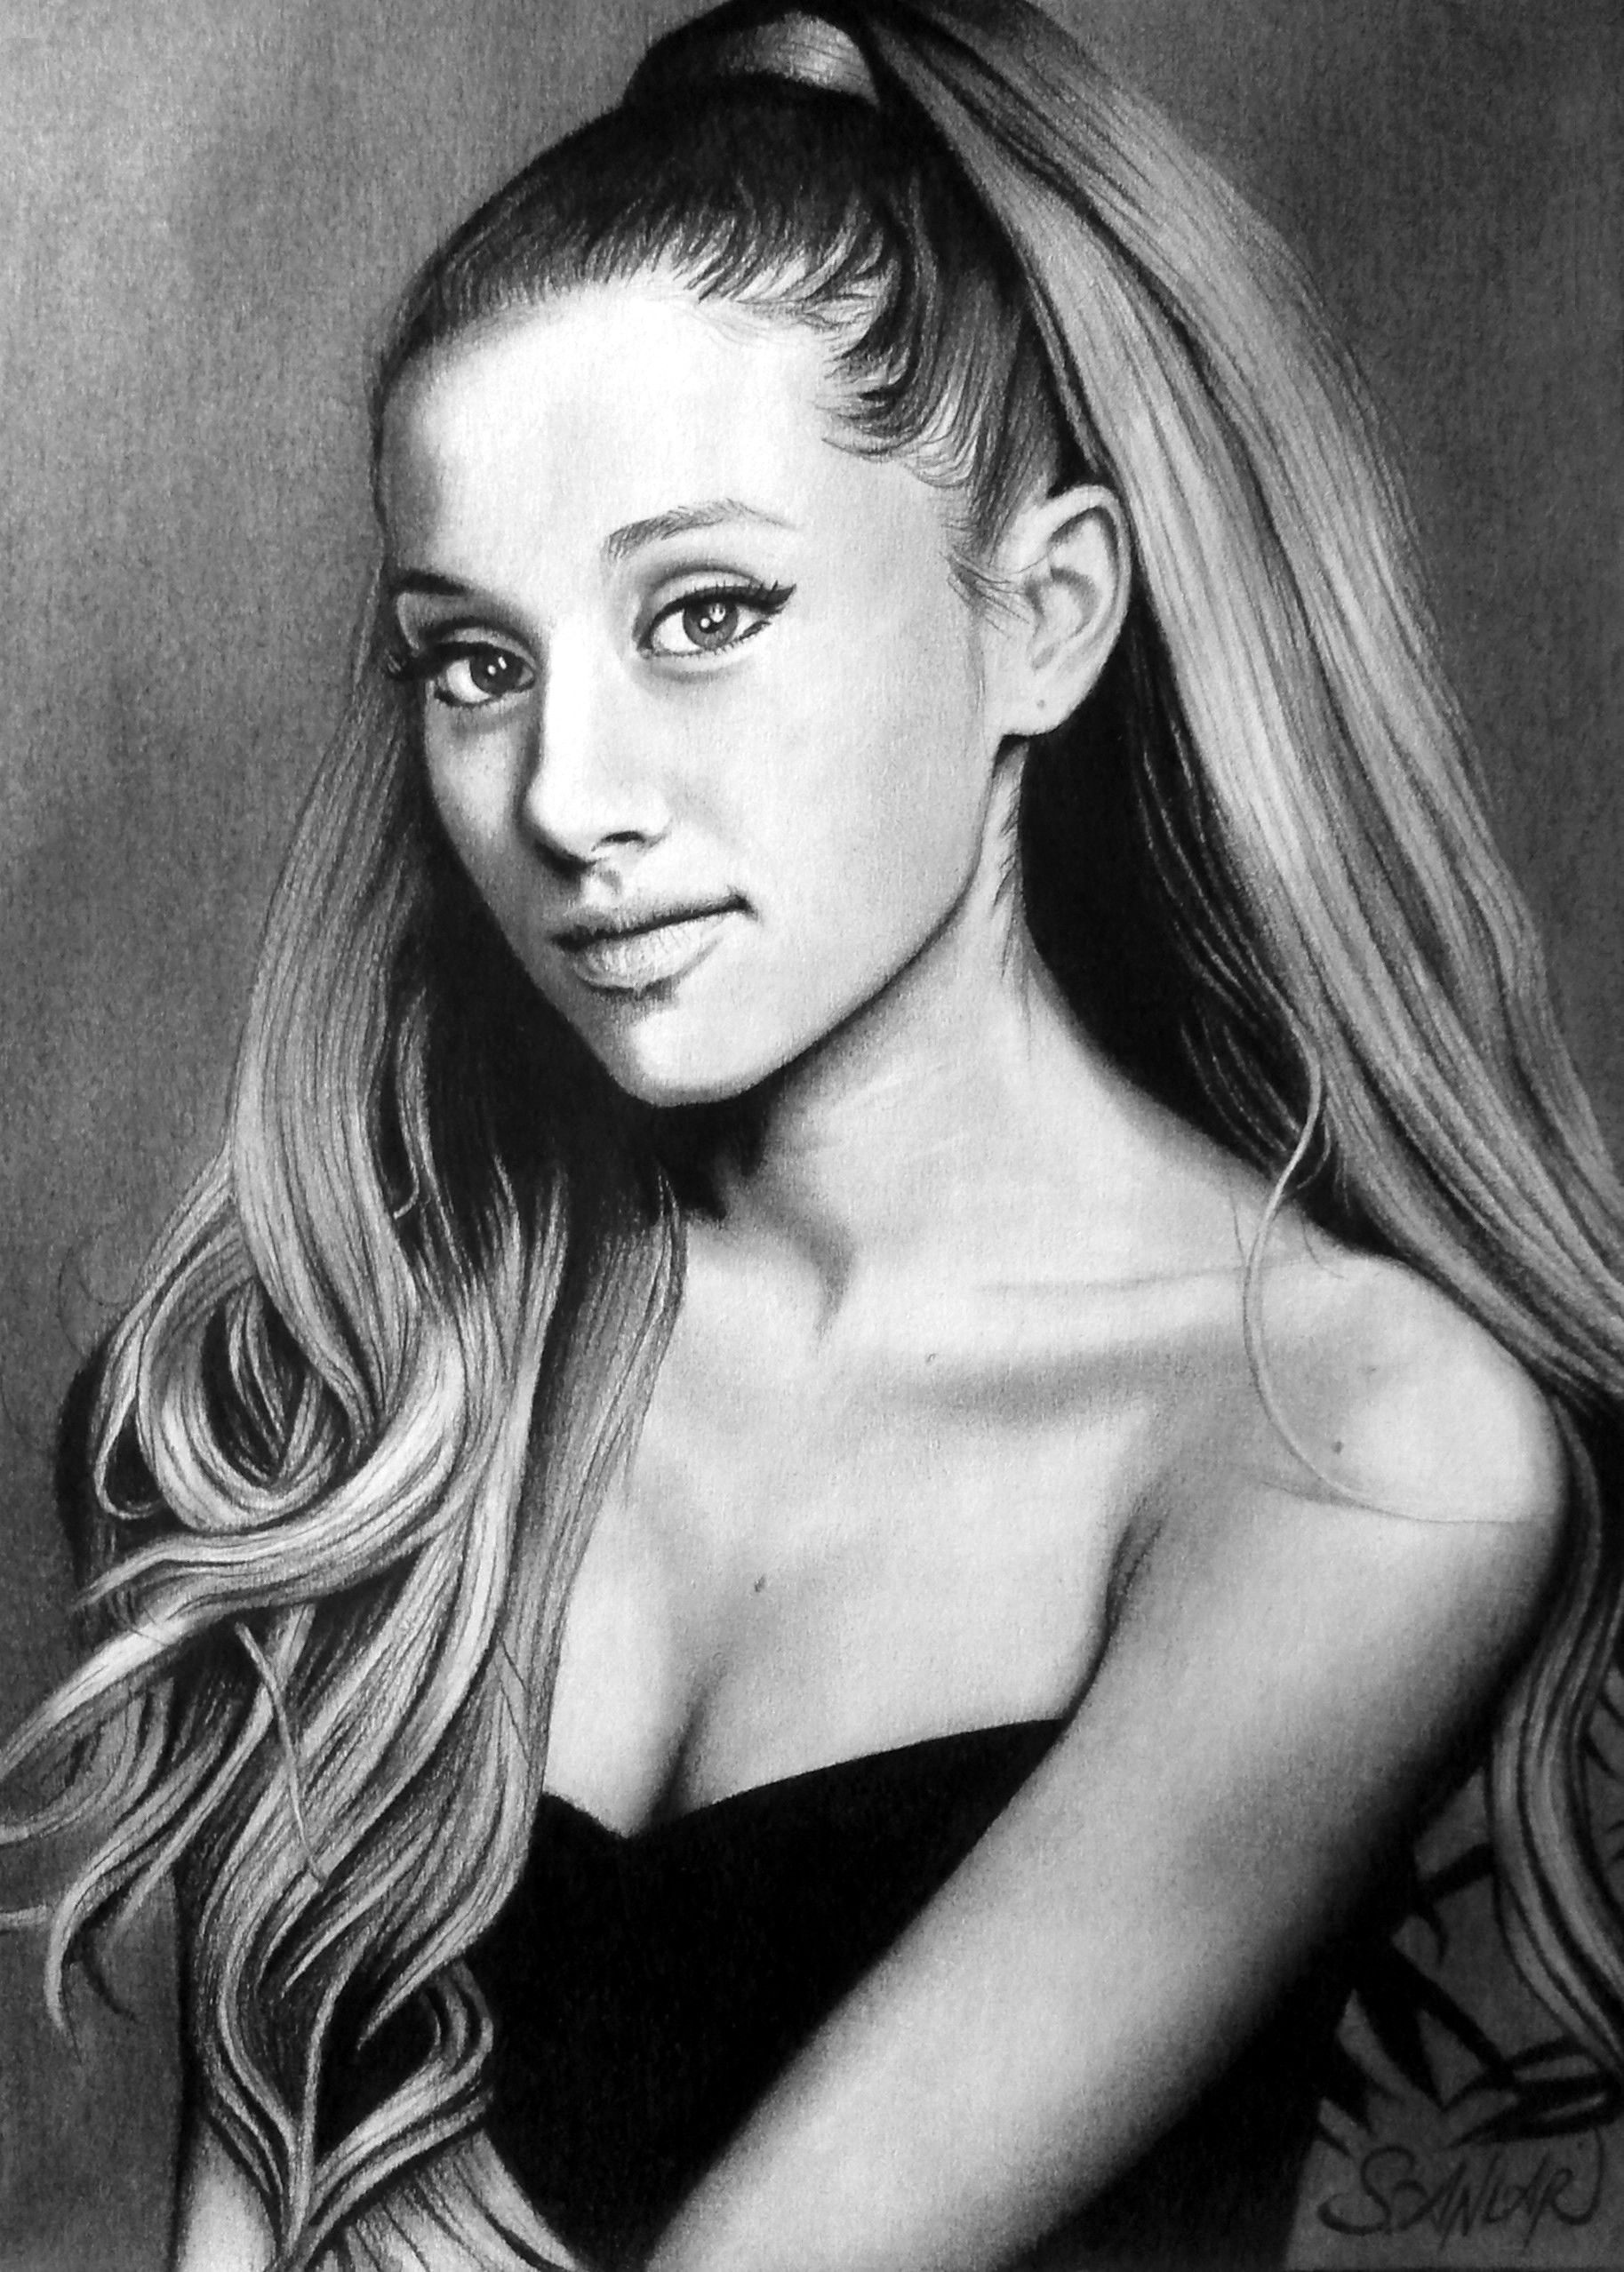 Charcoal drawing ariana grande